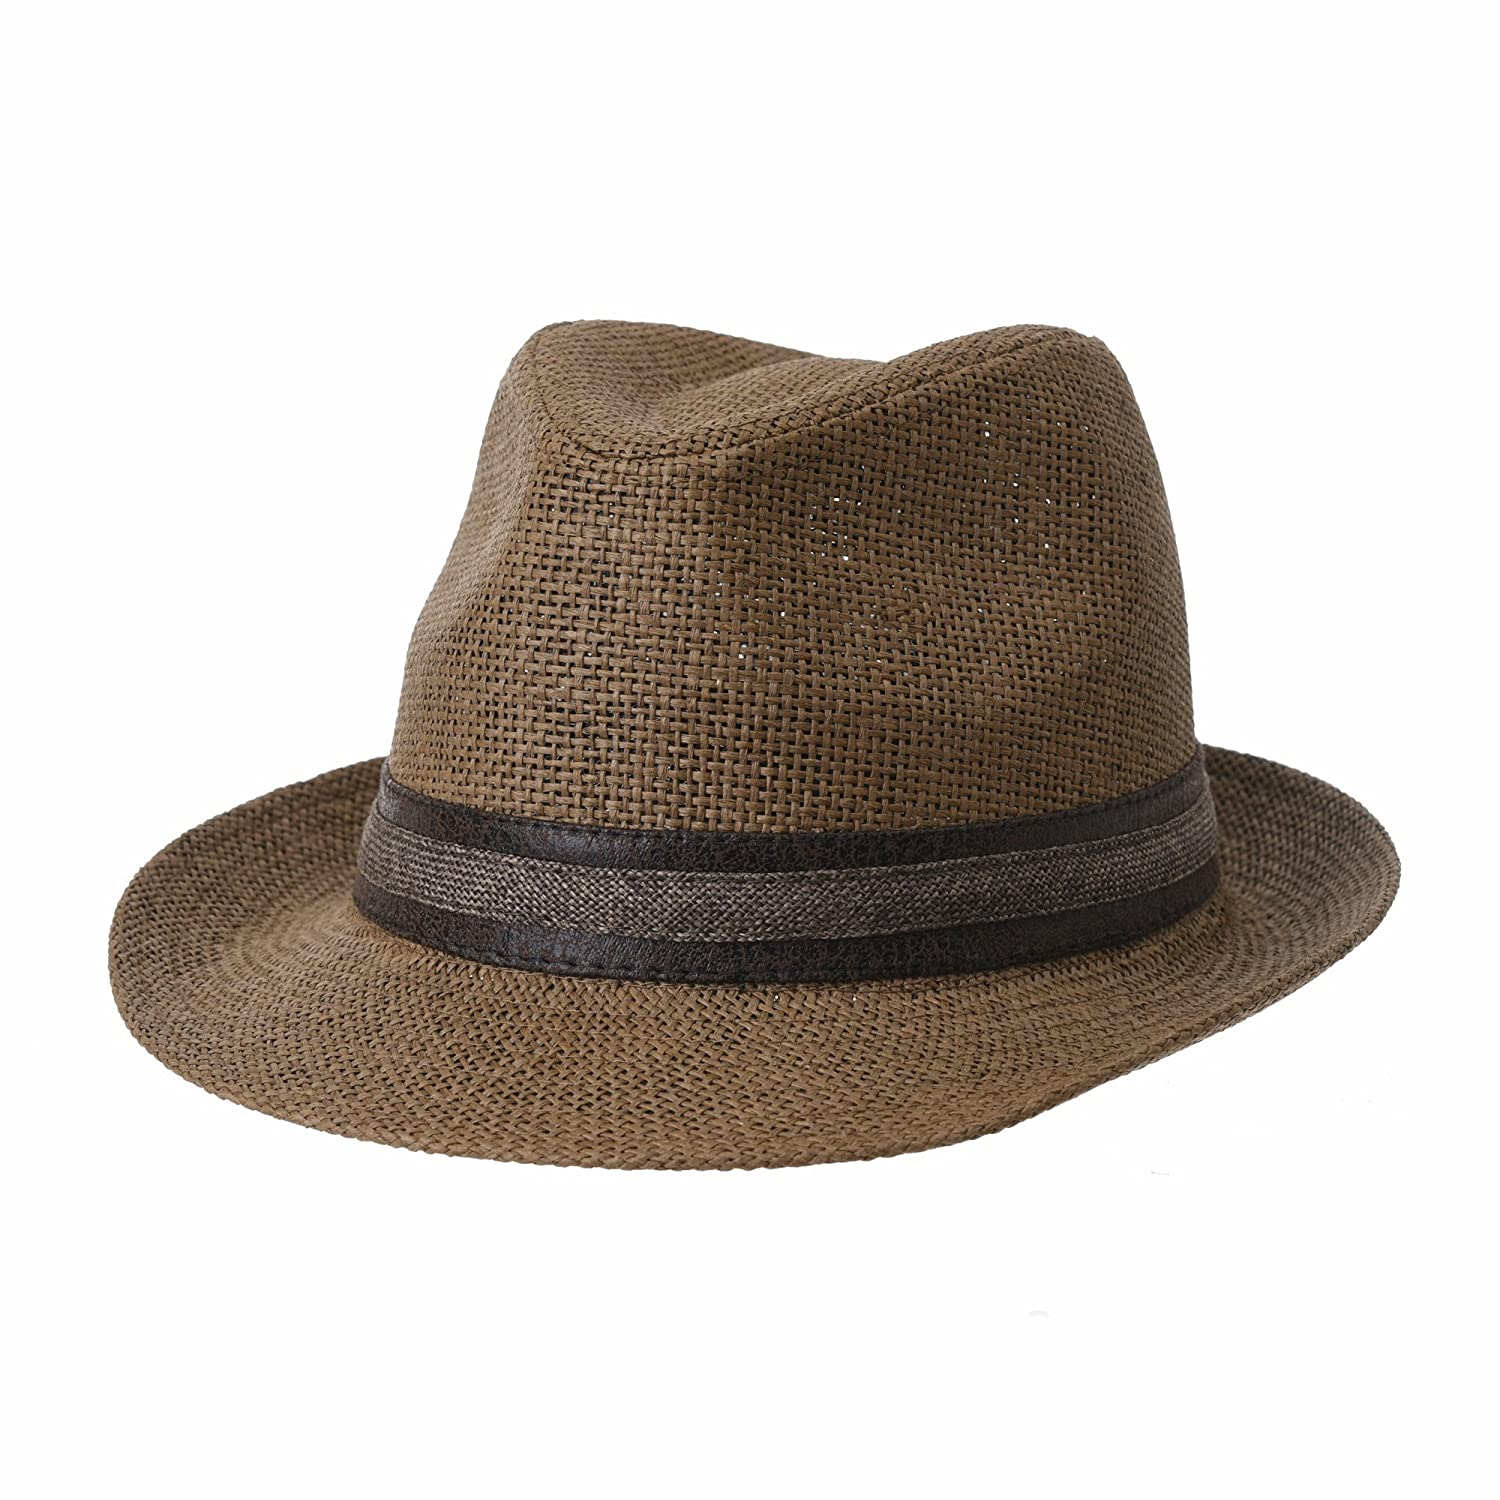 WITHMOONS Fedora Hat Summer Cool Paper Straw Trilby Band Men CR6952 CR6952Beige